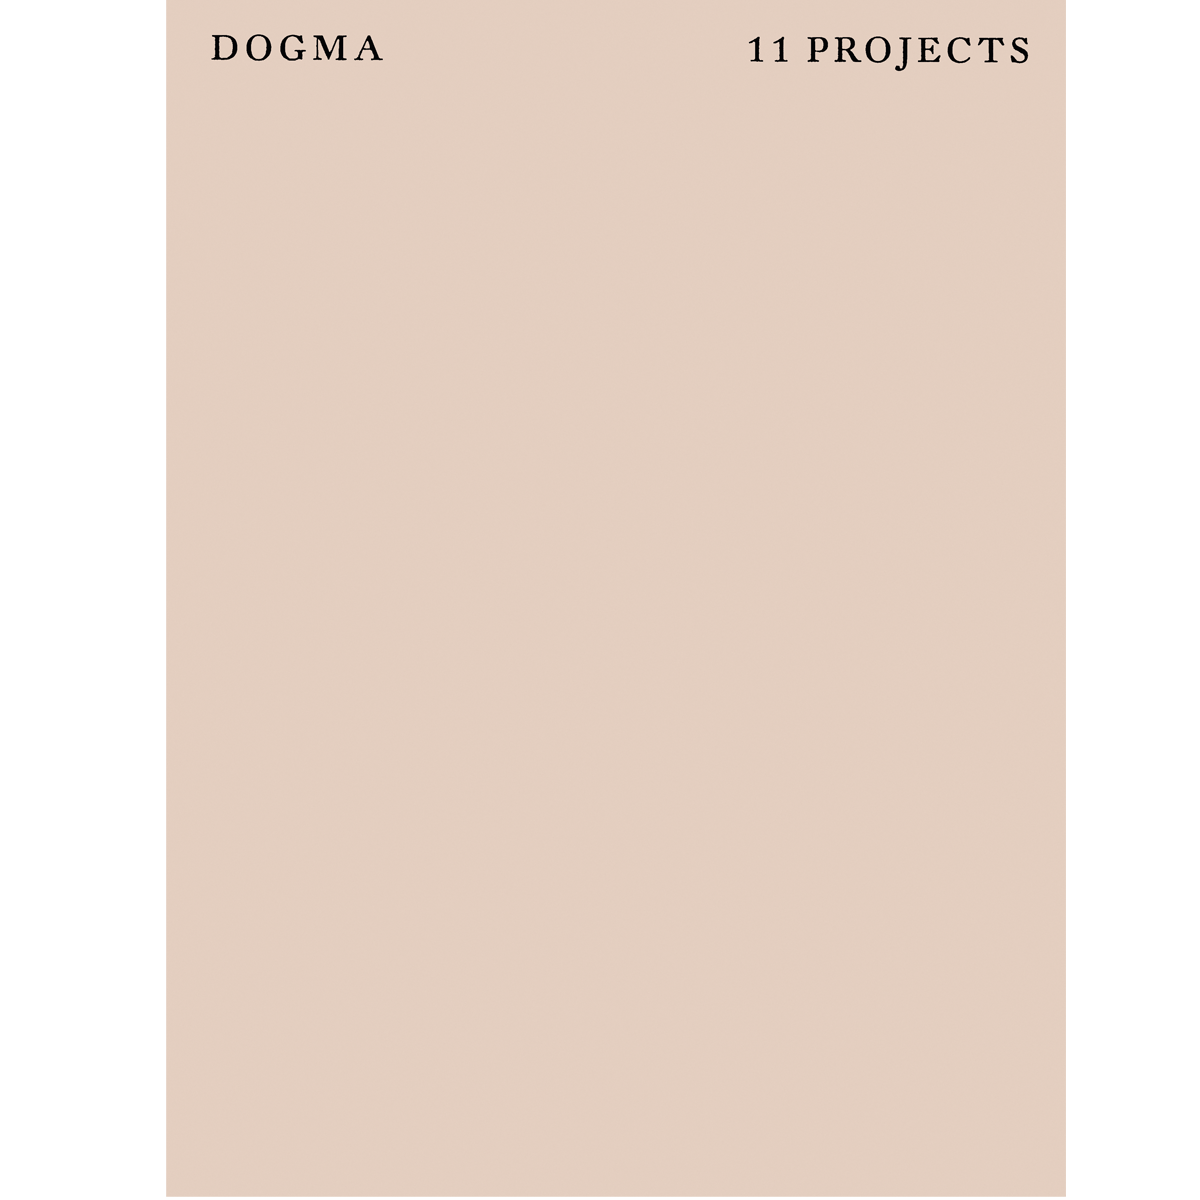 Dogma. 11 Projects